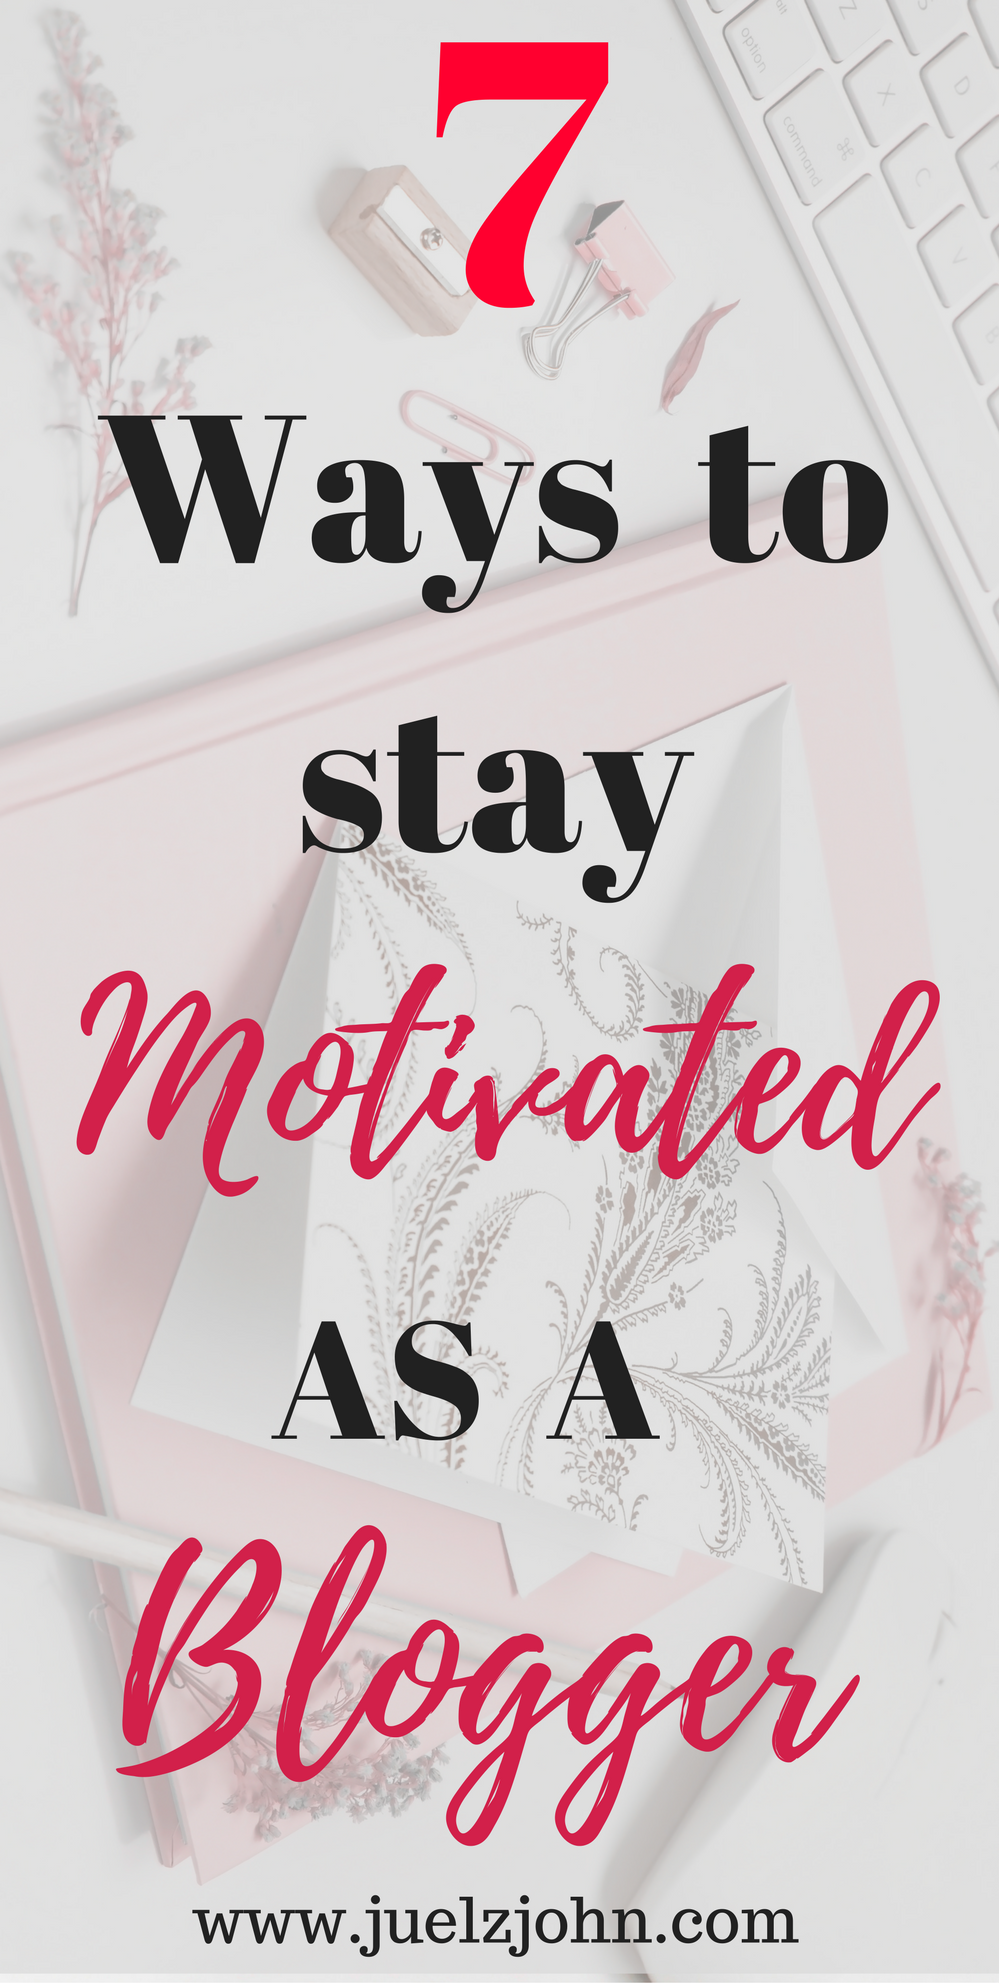 7 ways to stay motivated as a blogger www.juelzjohn.com